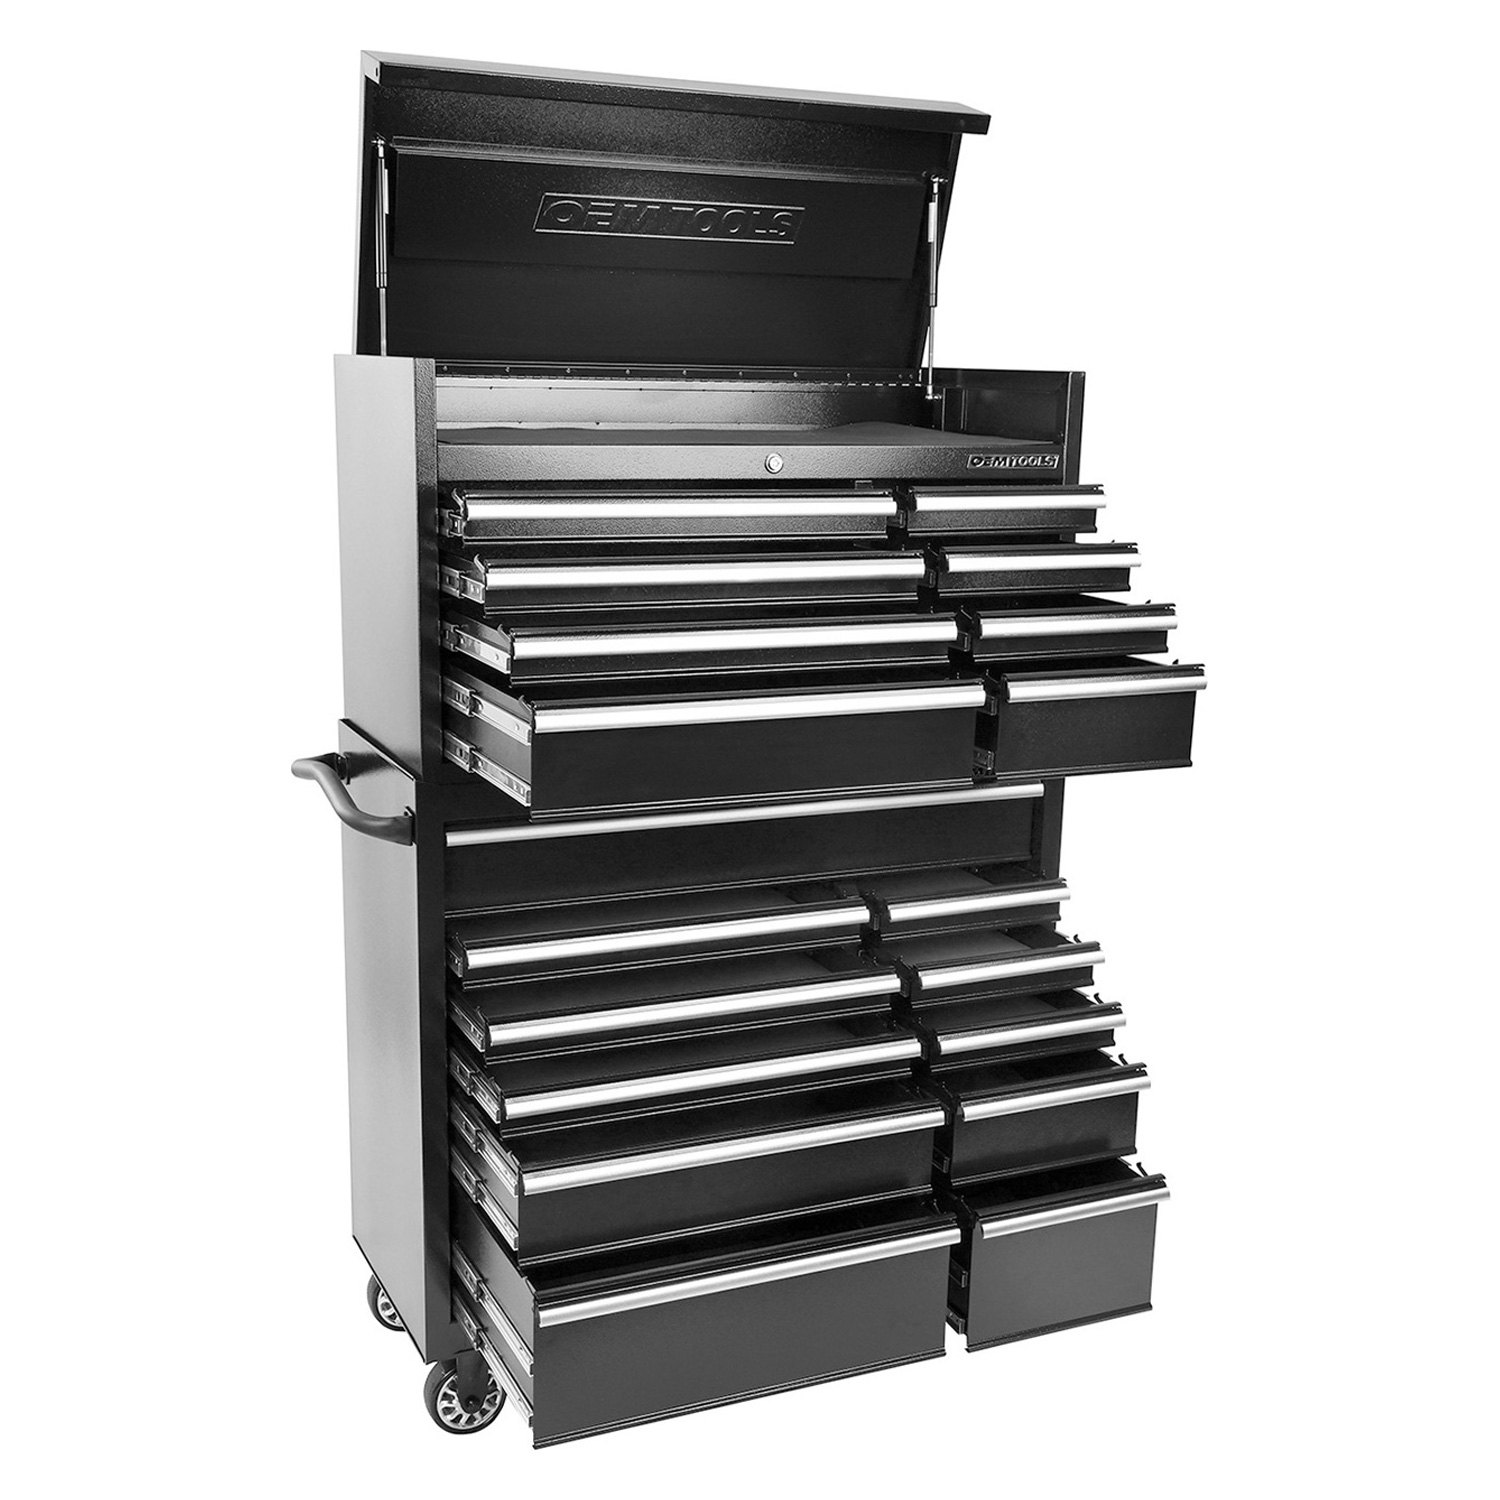 Oem Tools 24584 Black 41 19 Drawer Chest And Cabinet Combo